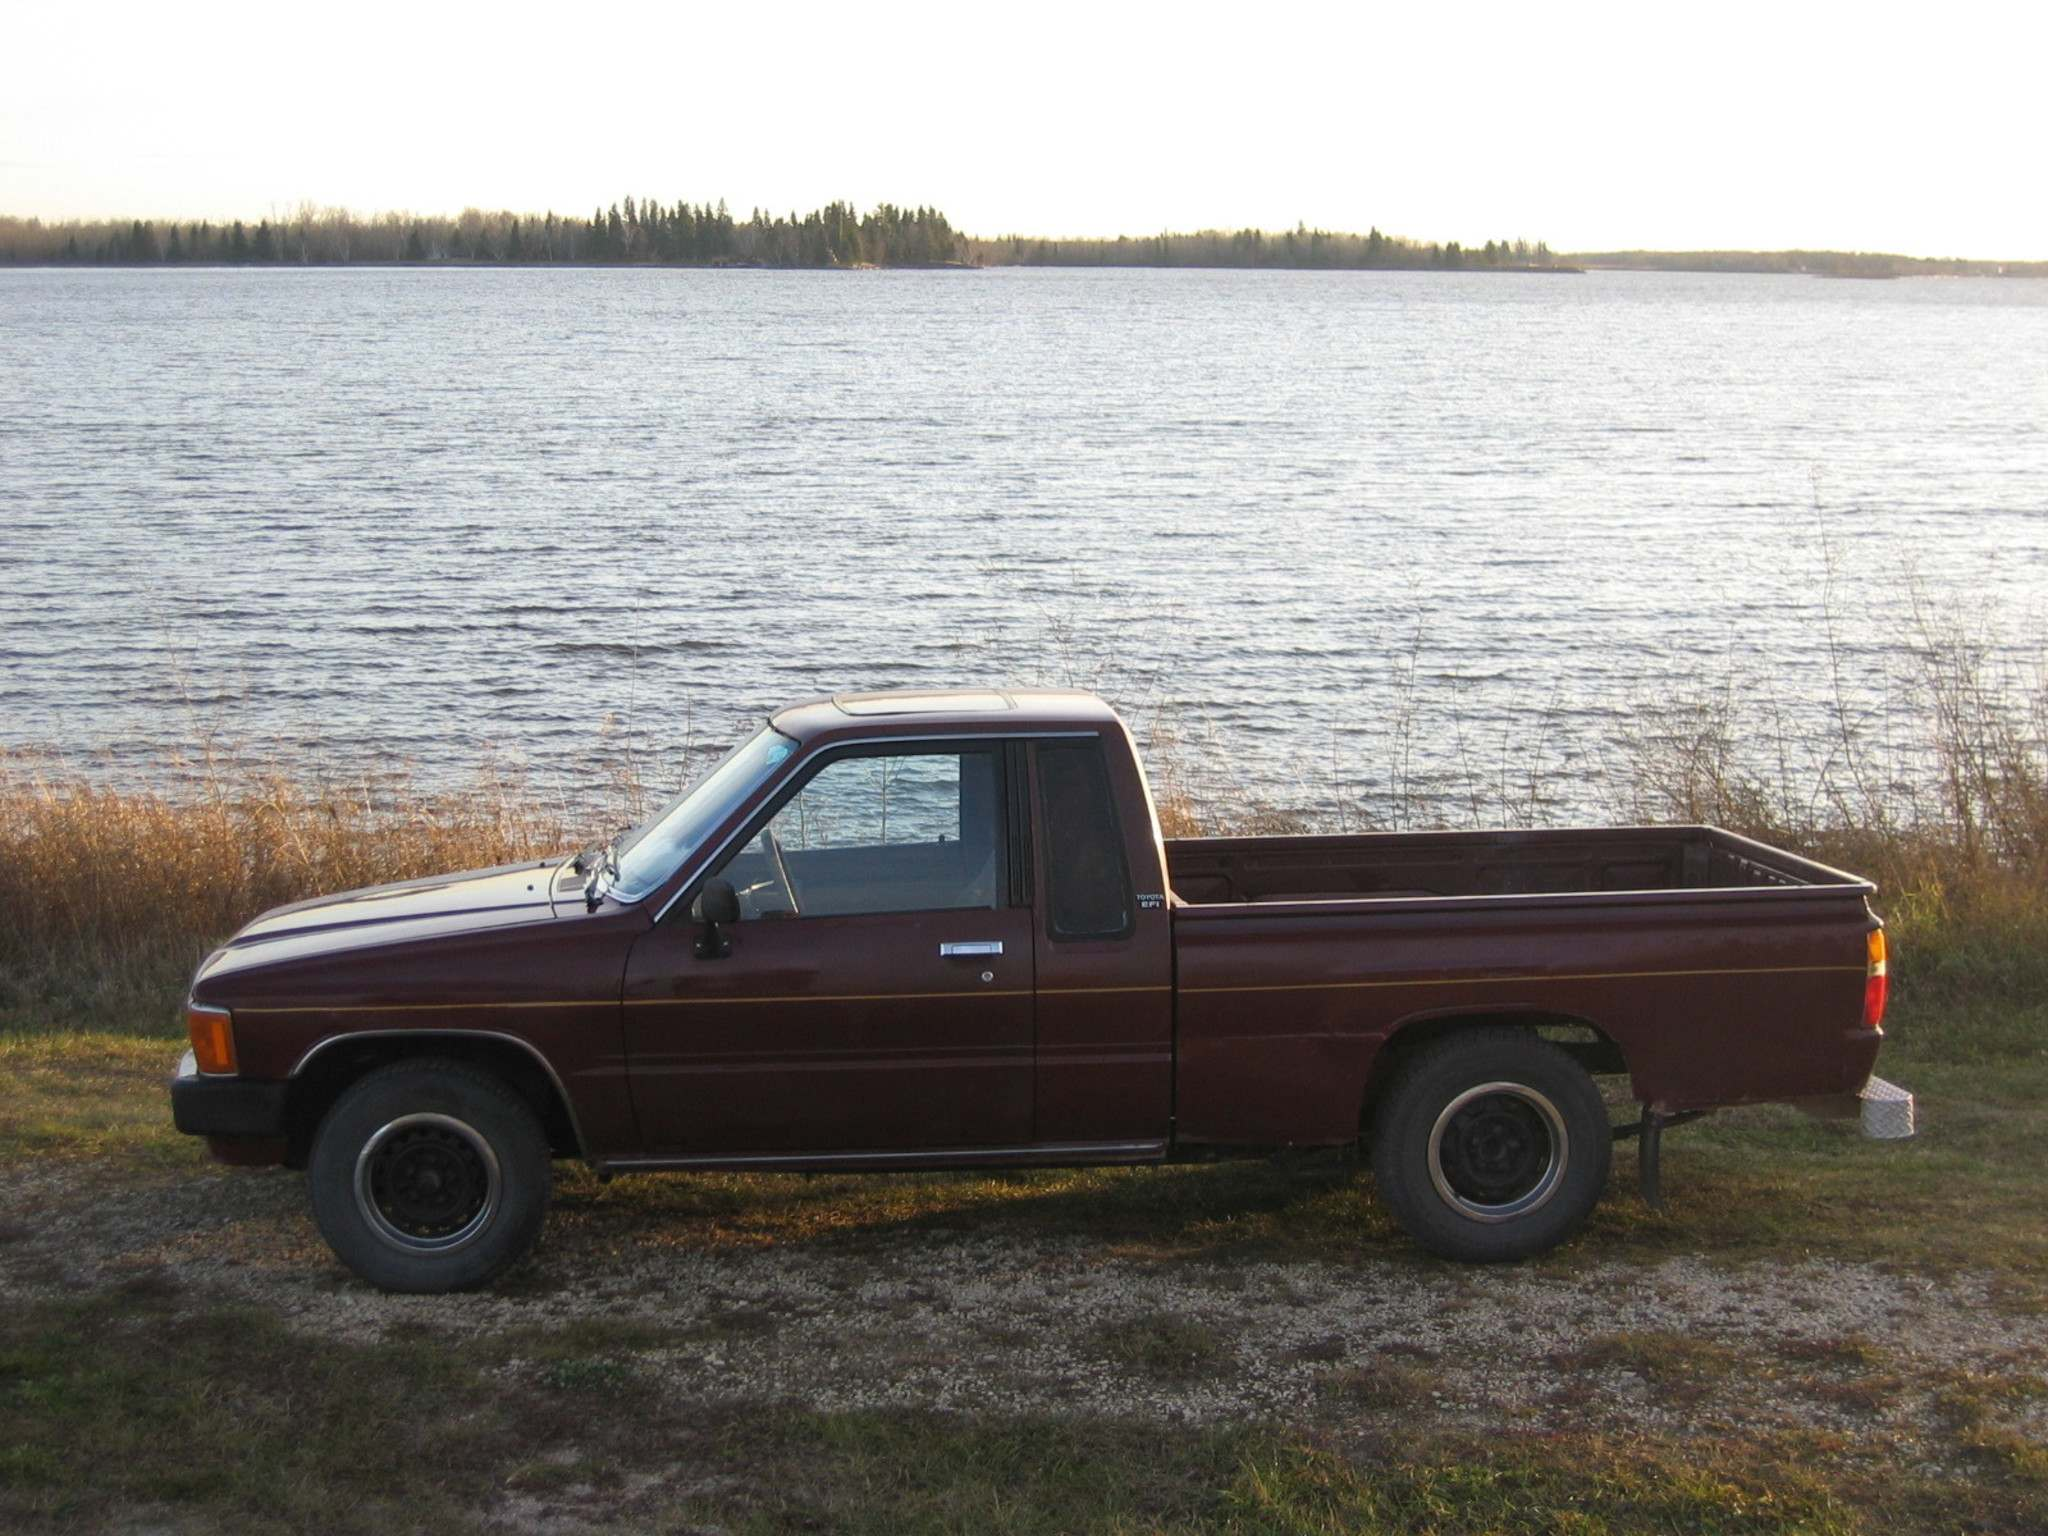 Willy's old 1986 Toyota hadn't moved in more than a year when he bought it for $500.